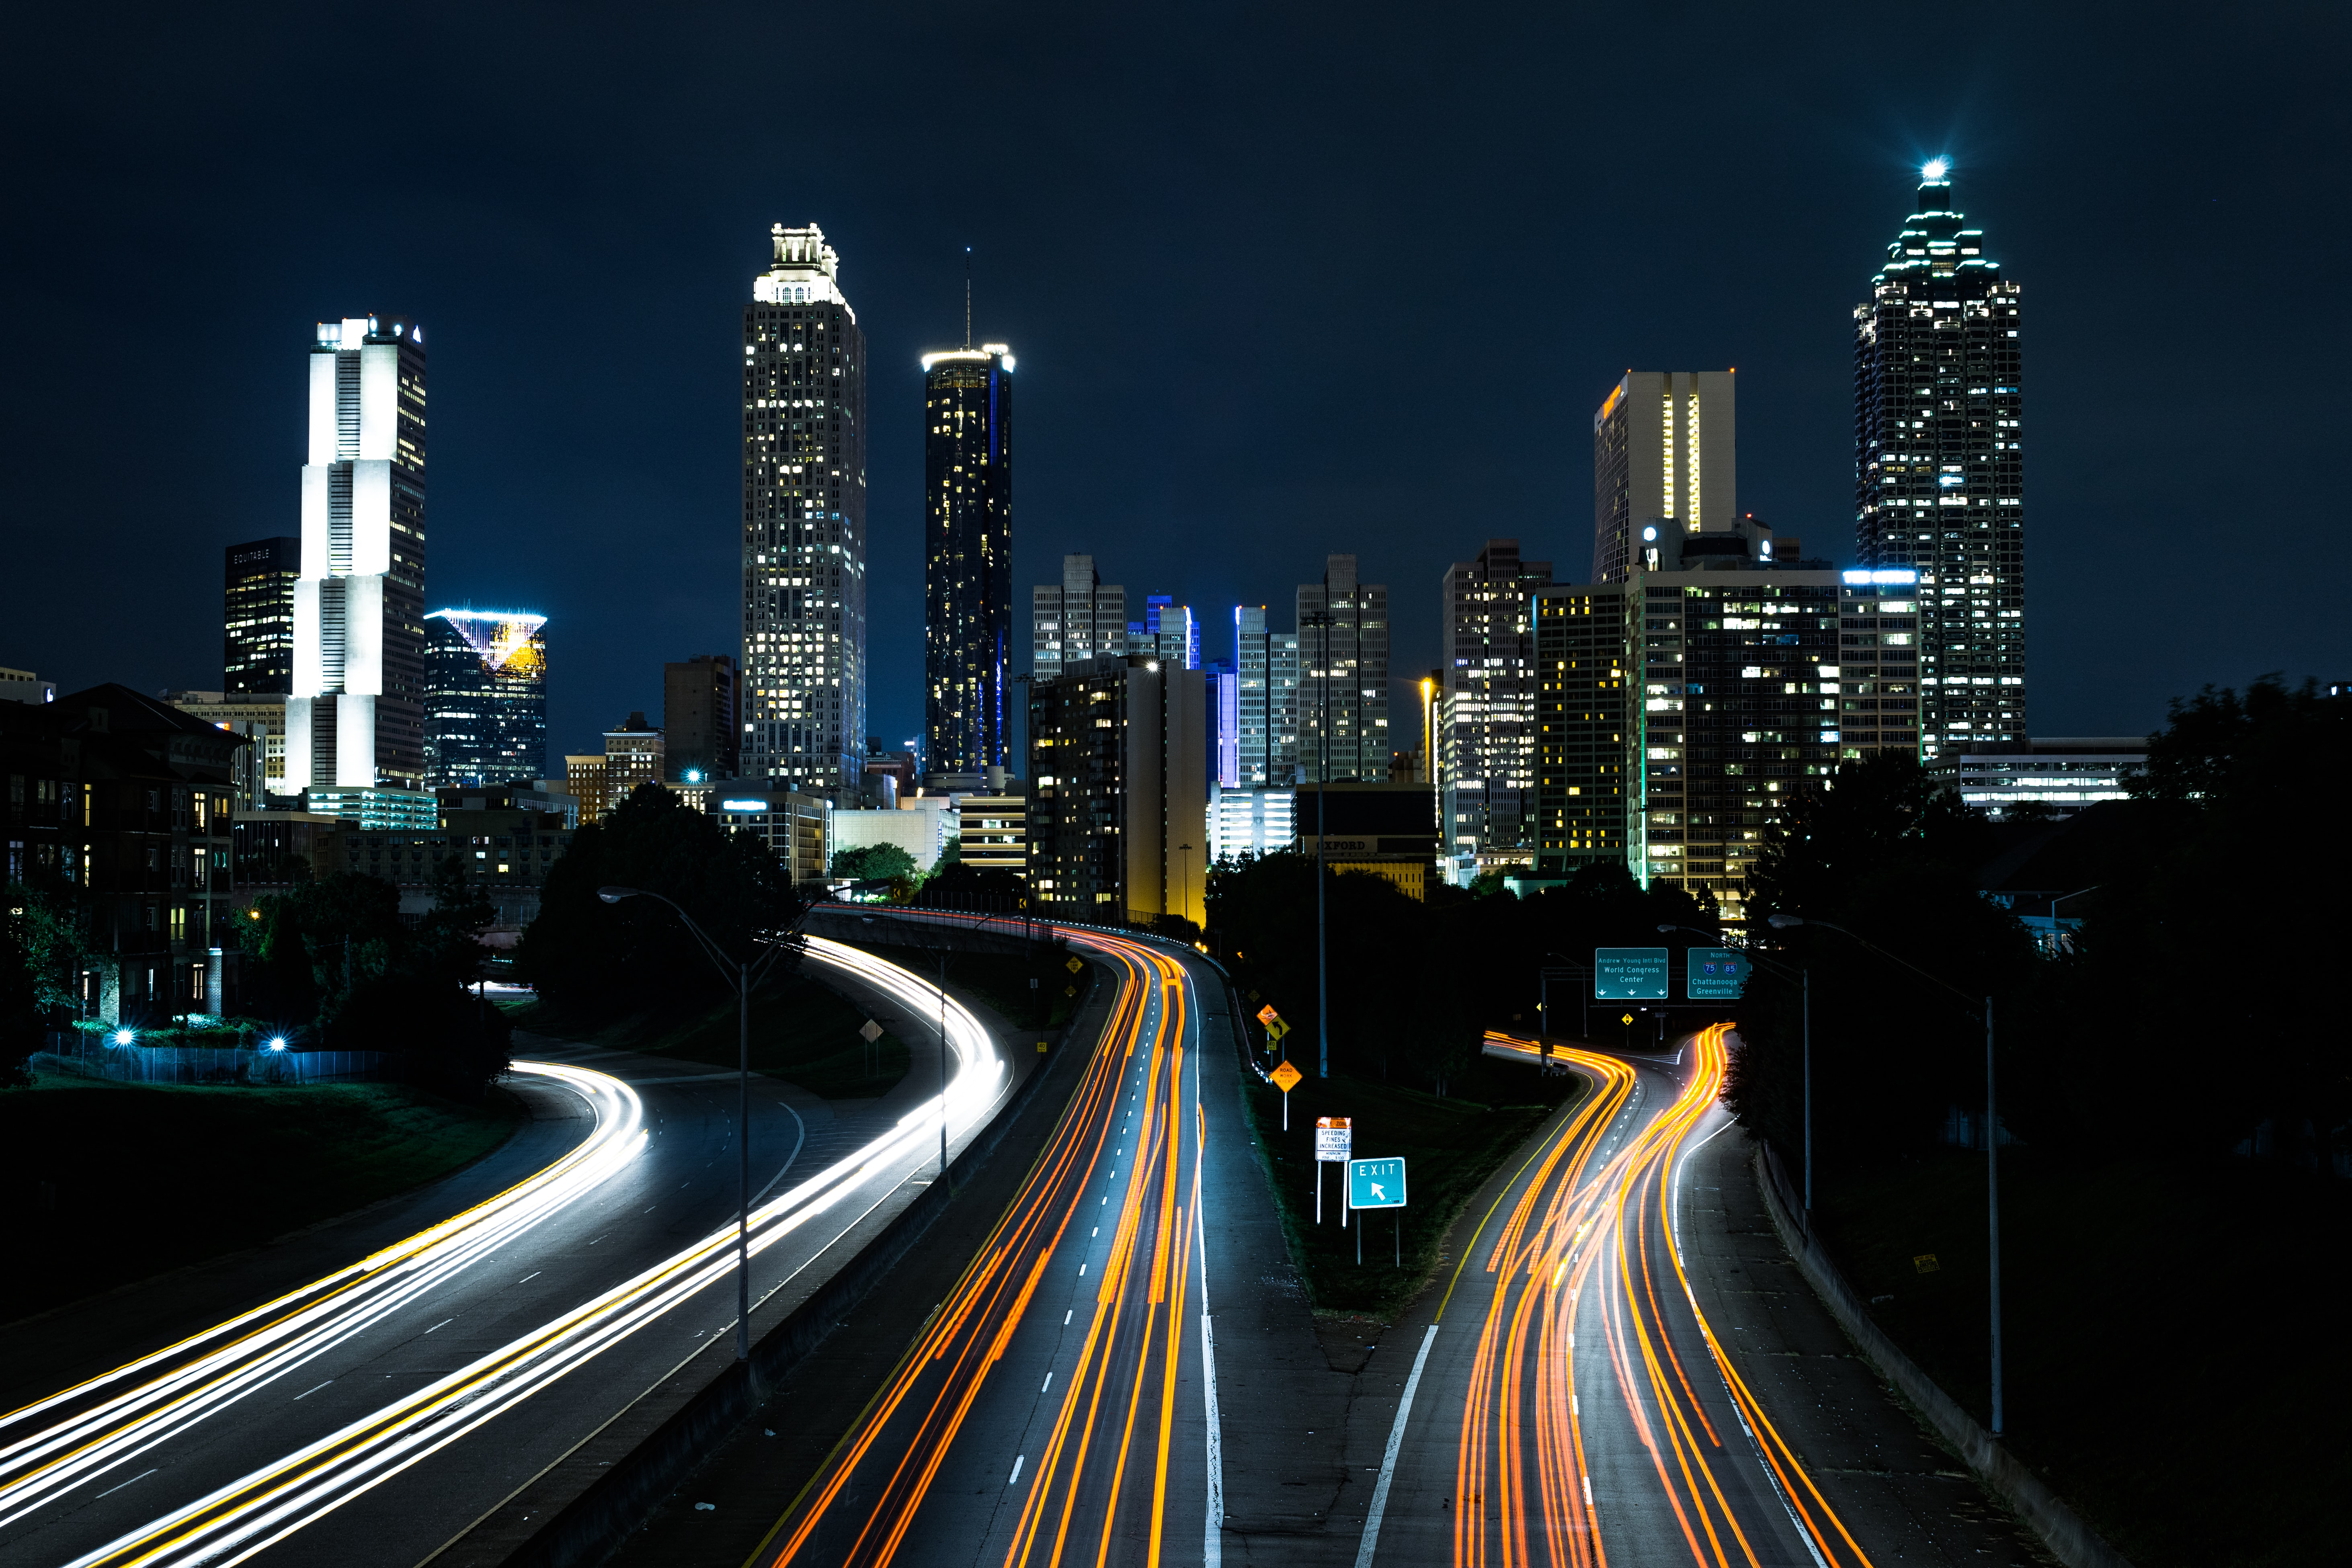 time lapse photo of passing cars during night time